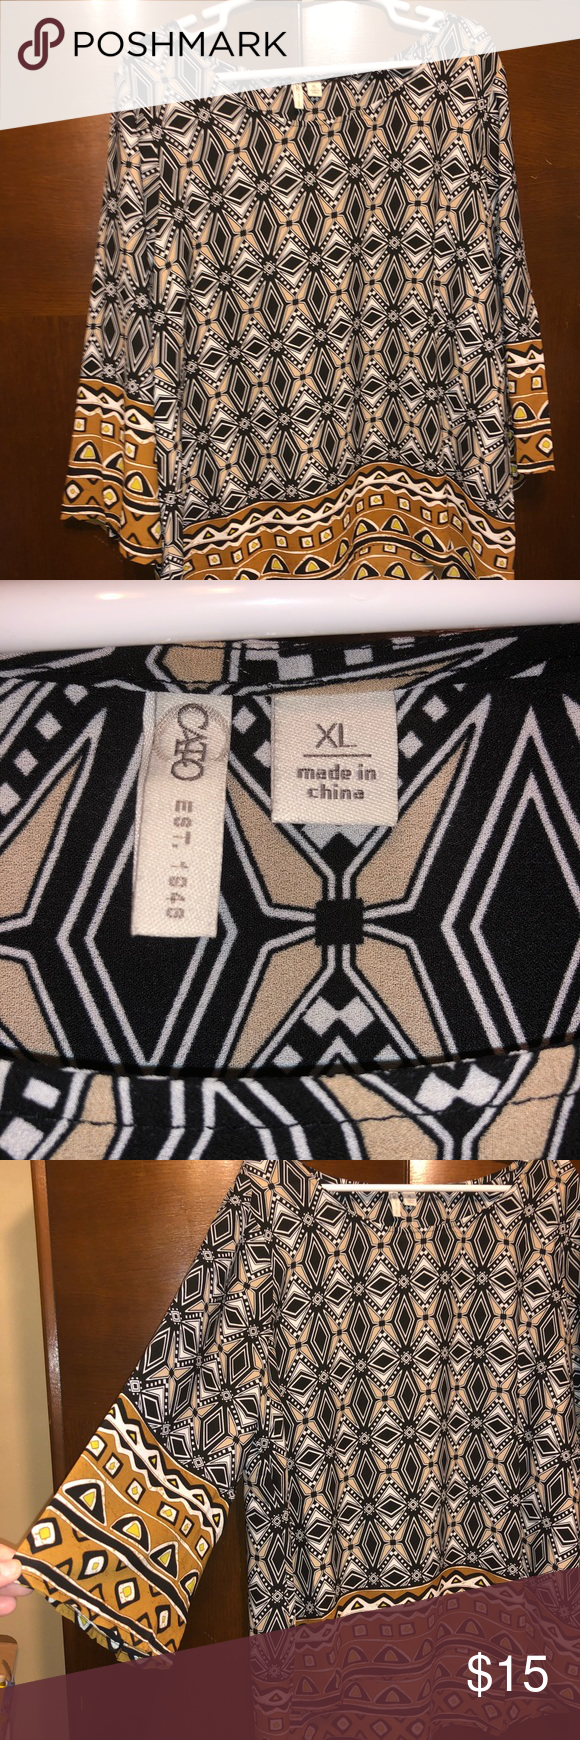 19aa951906 Beautiful geometric black/white/ brown blouse XL Beautiful geometric  designs soft flowy comfy shirt XL - Cato Cato Tops Blouses